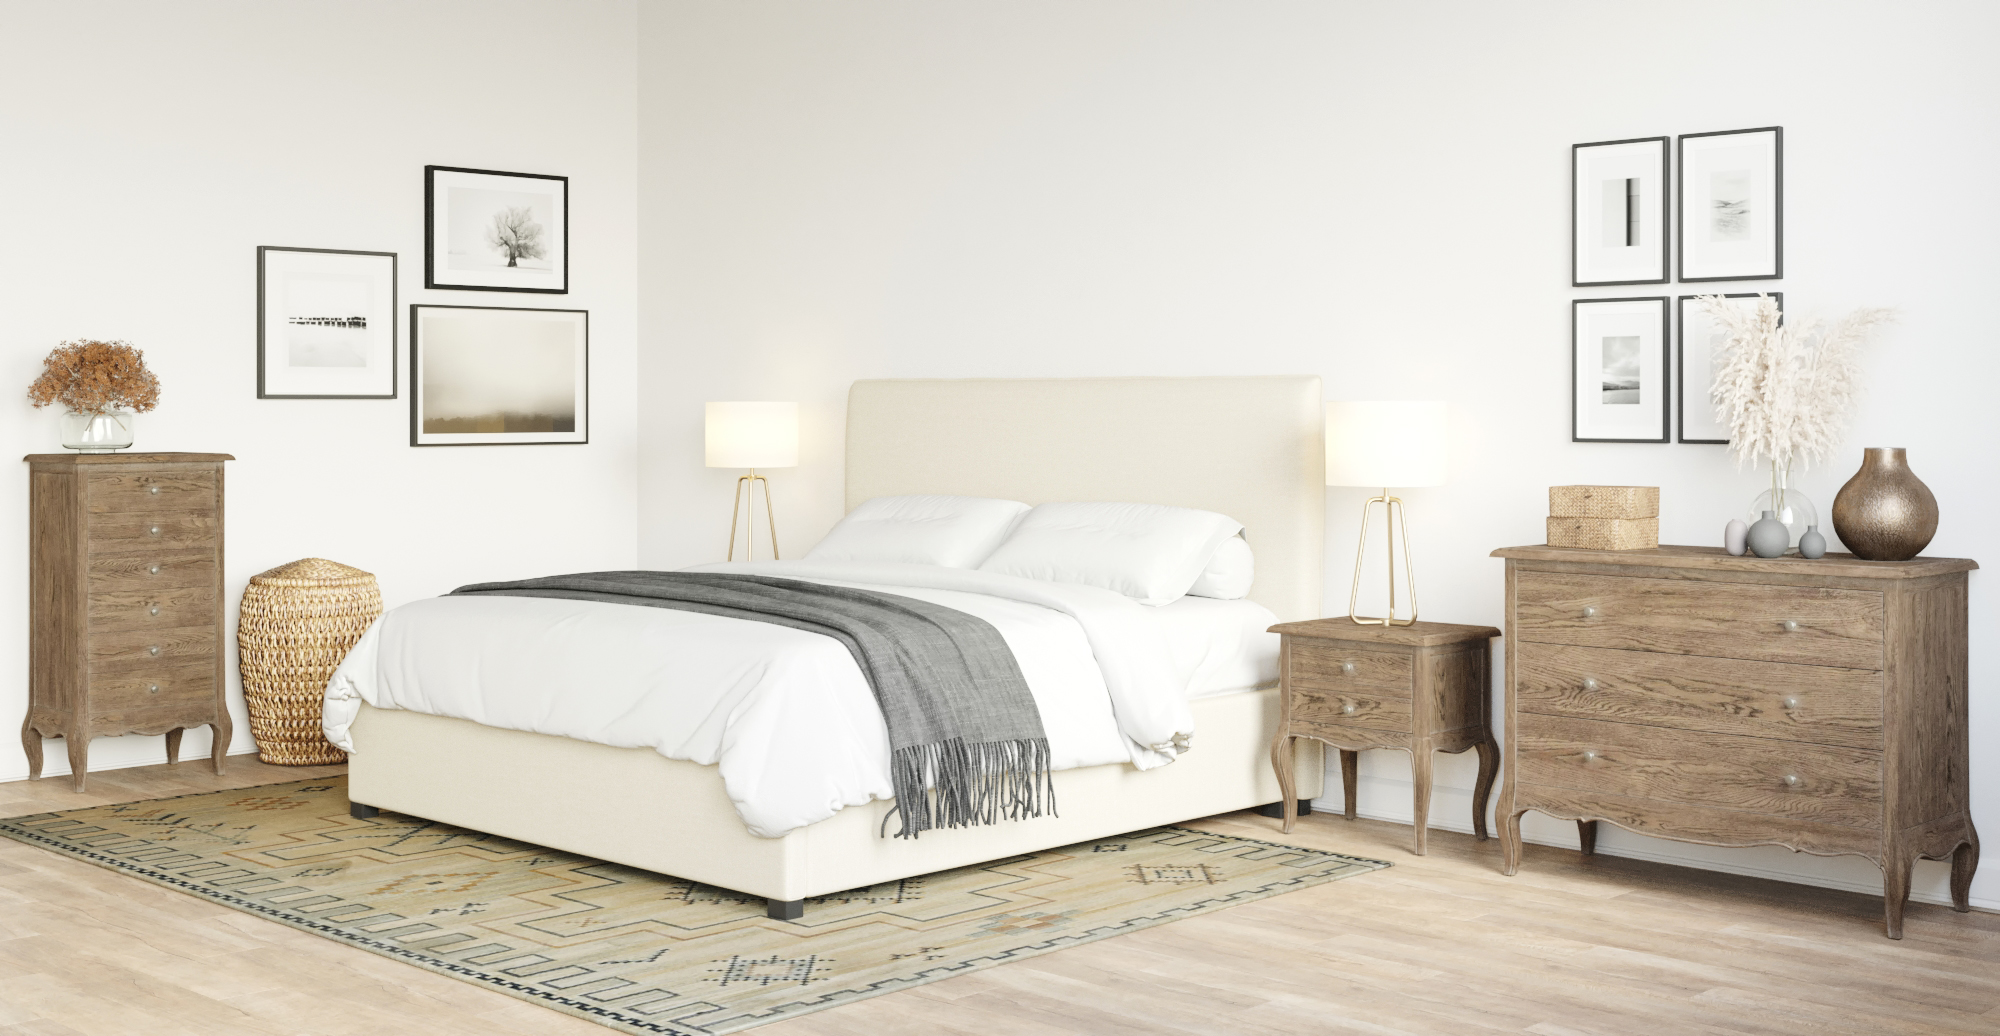 Brosa Sara Queen Gaslift Bed Frame styled in classic traditional bedroom